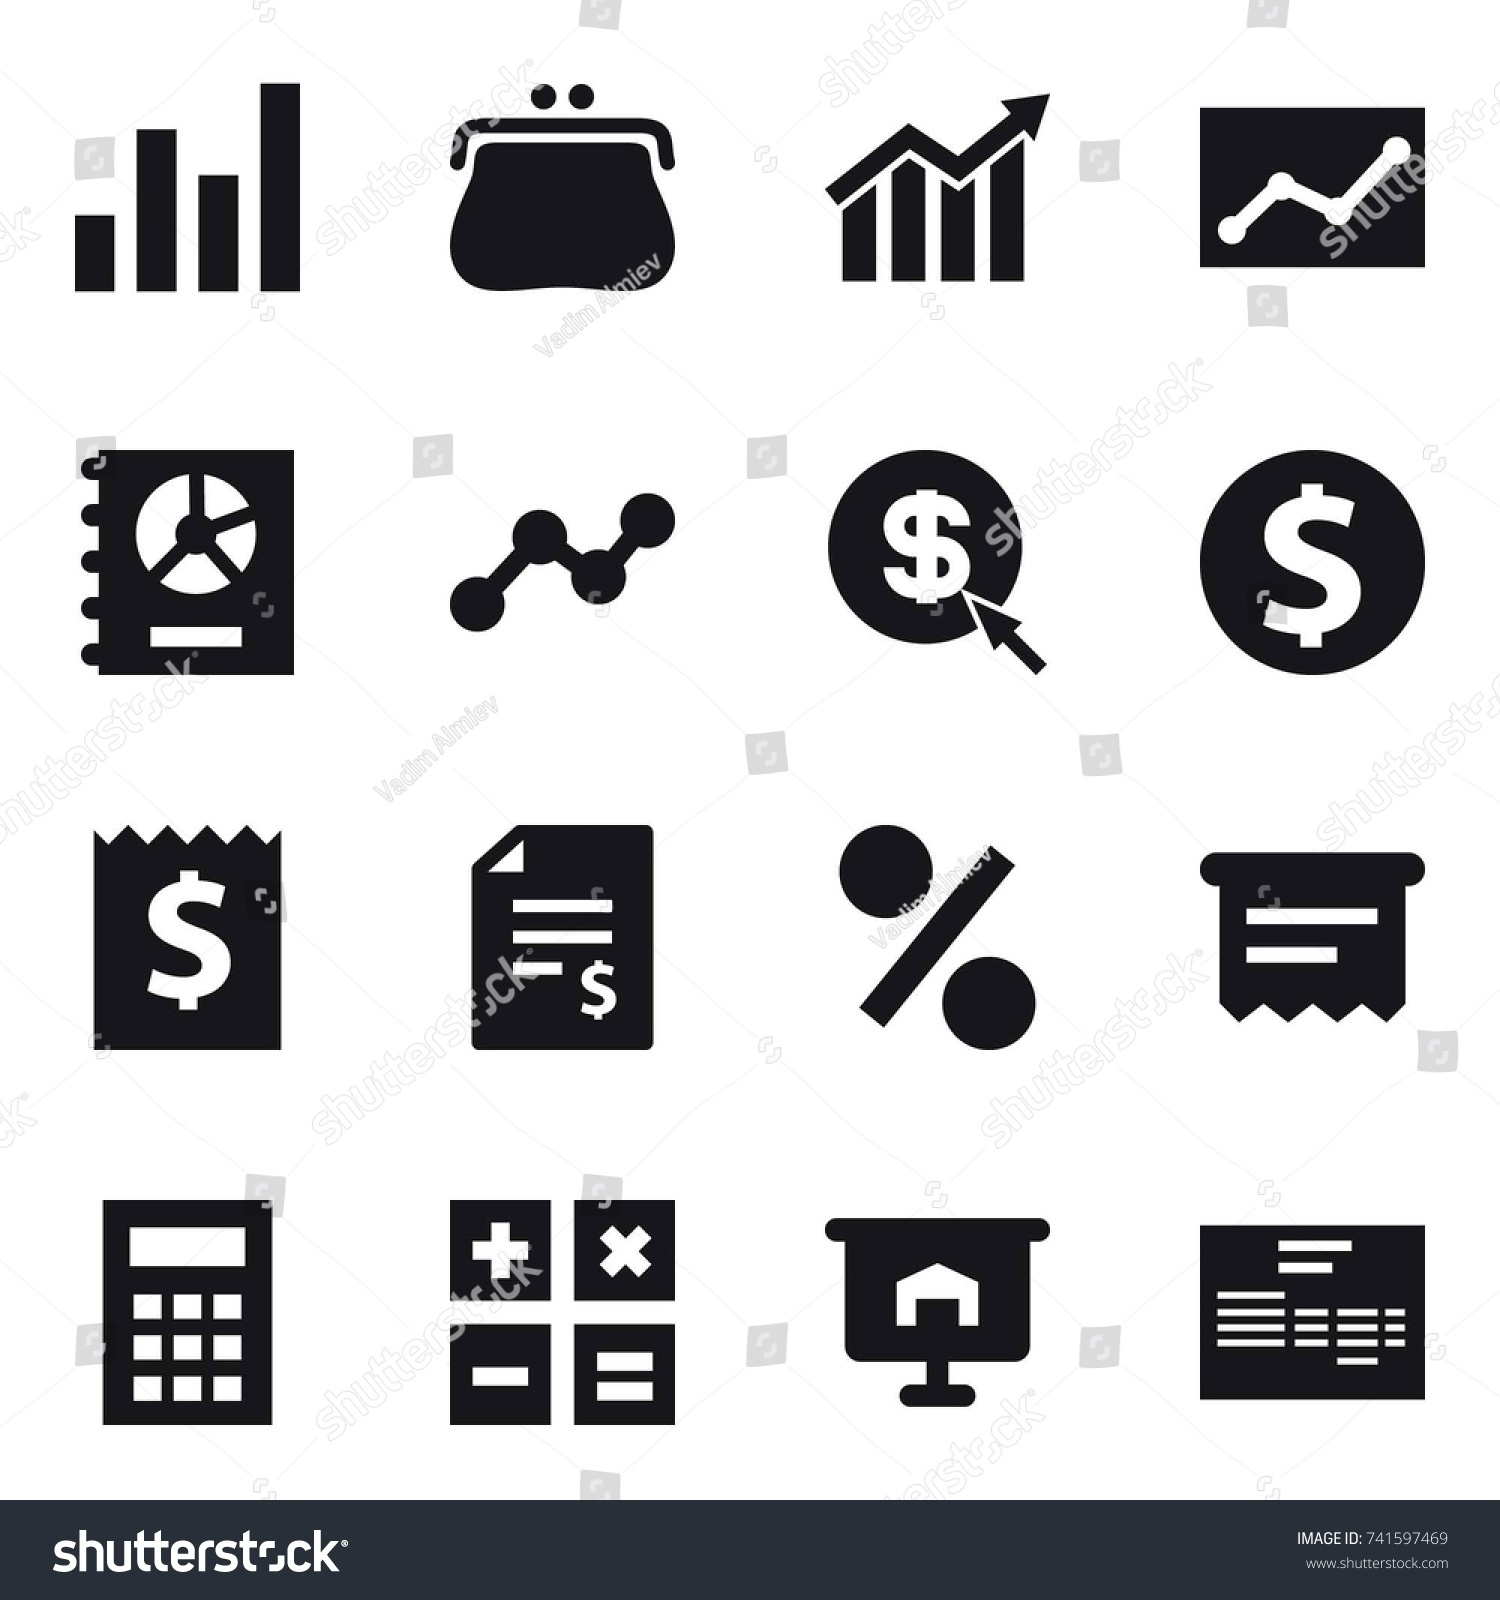 hight resolution of 16 vector icon set graph purse diagram statistic annual report